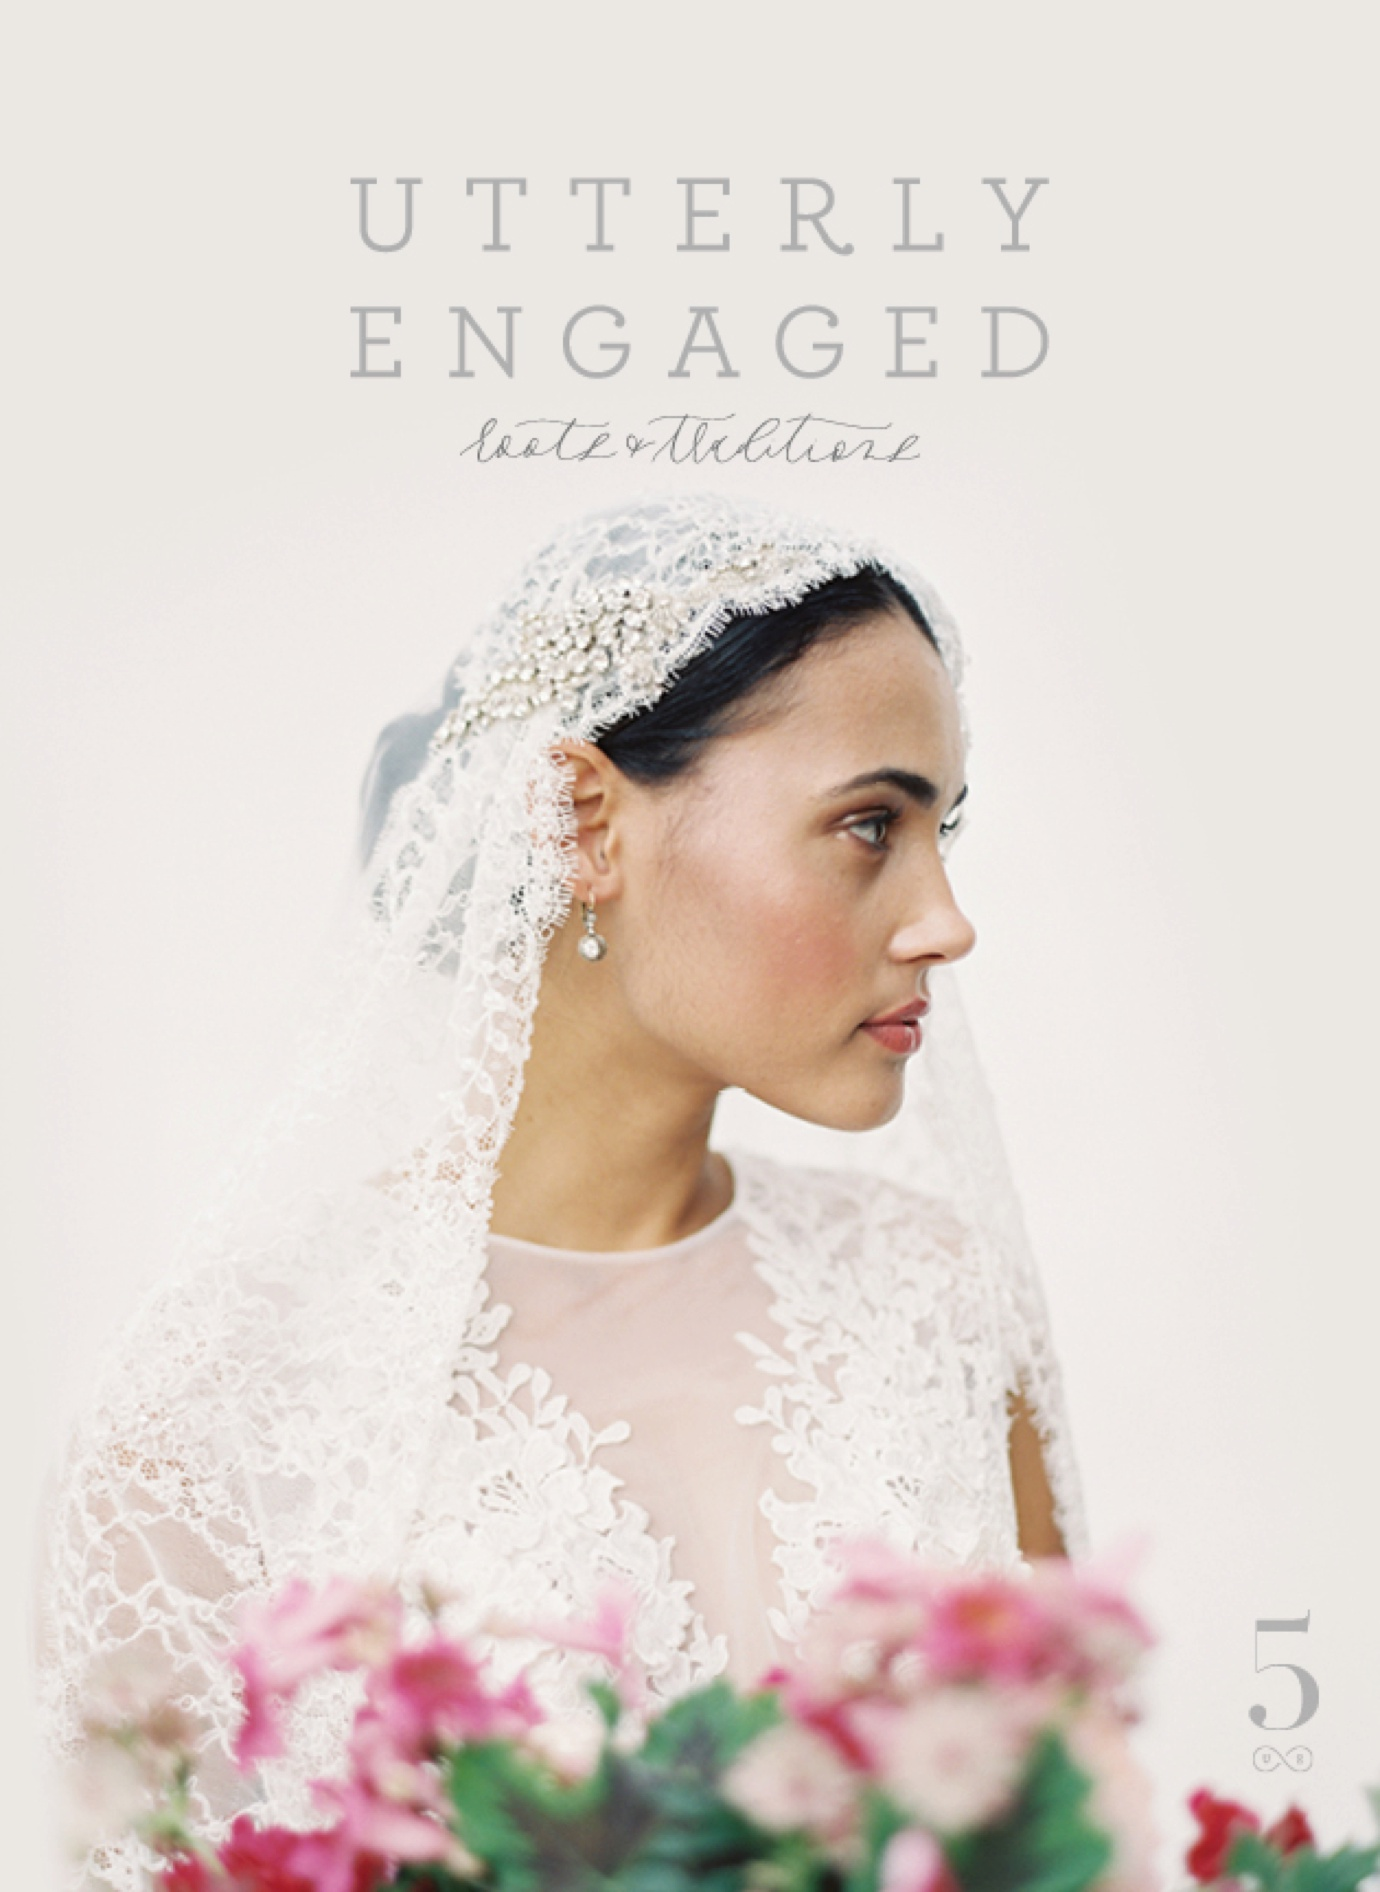 delbarr-moradi-photography-Utterly Engaged-magazine-lifestyle-photography-wedding_0005